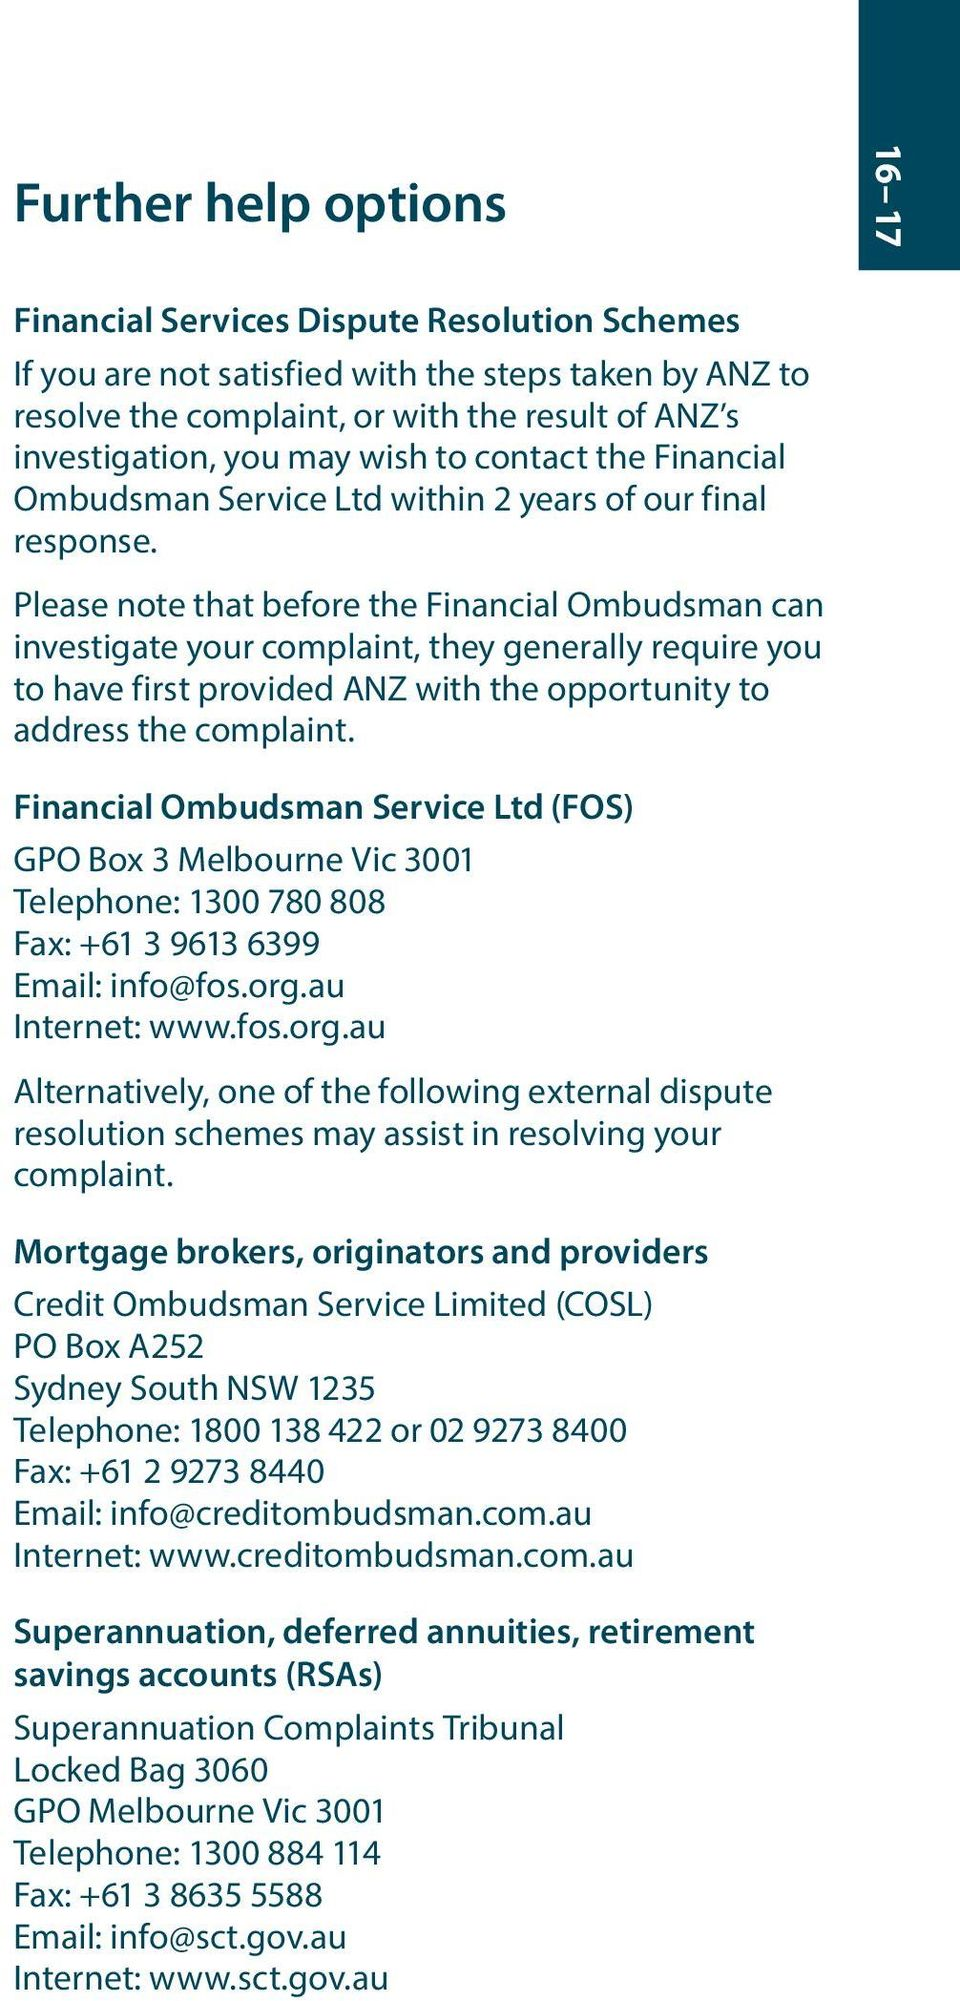 Please note that before the Financial Ombudsman can investigate your complaint, they generally require you to have first provided ANZ with the opportunity to address the complaint.